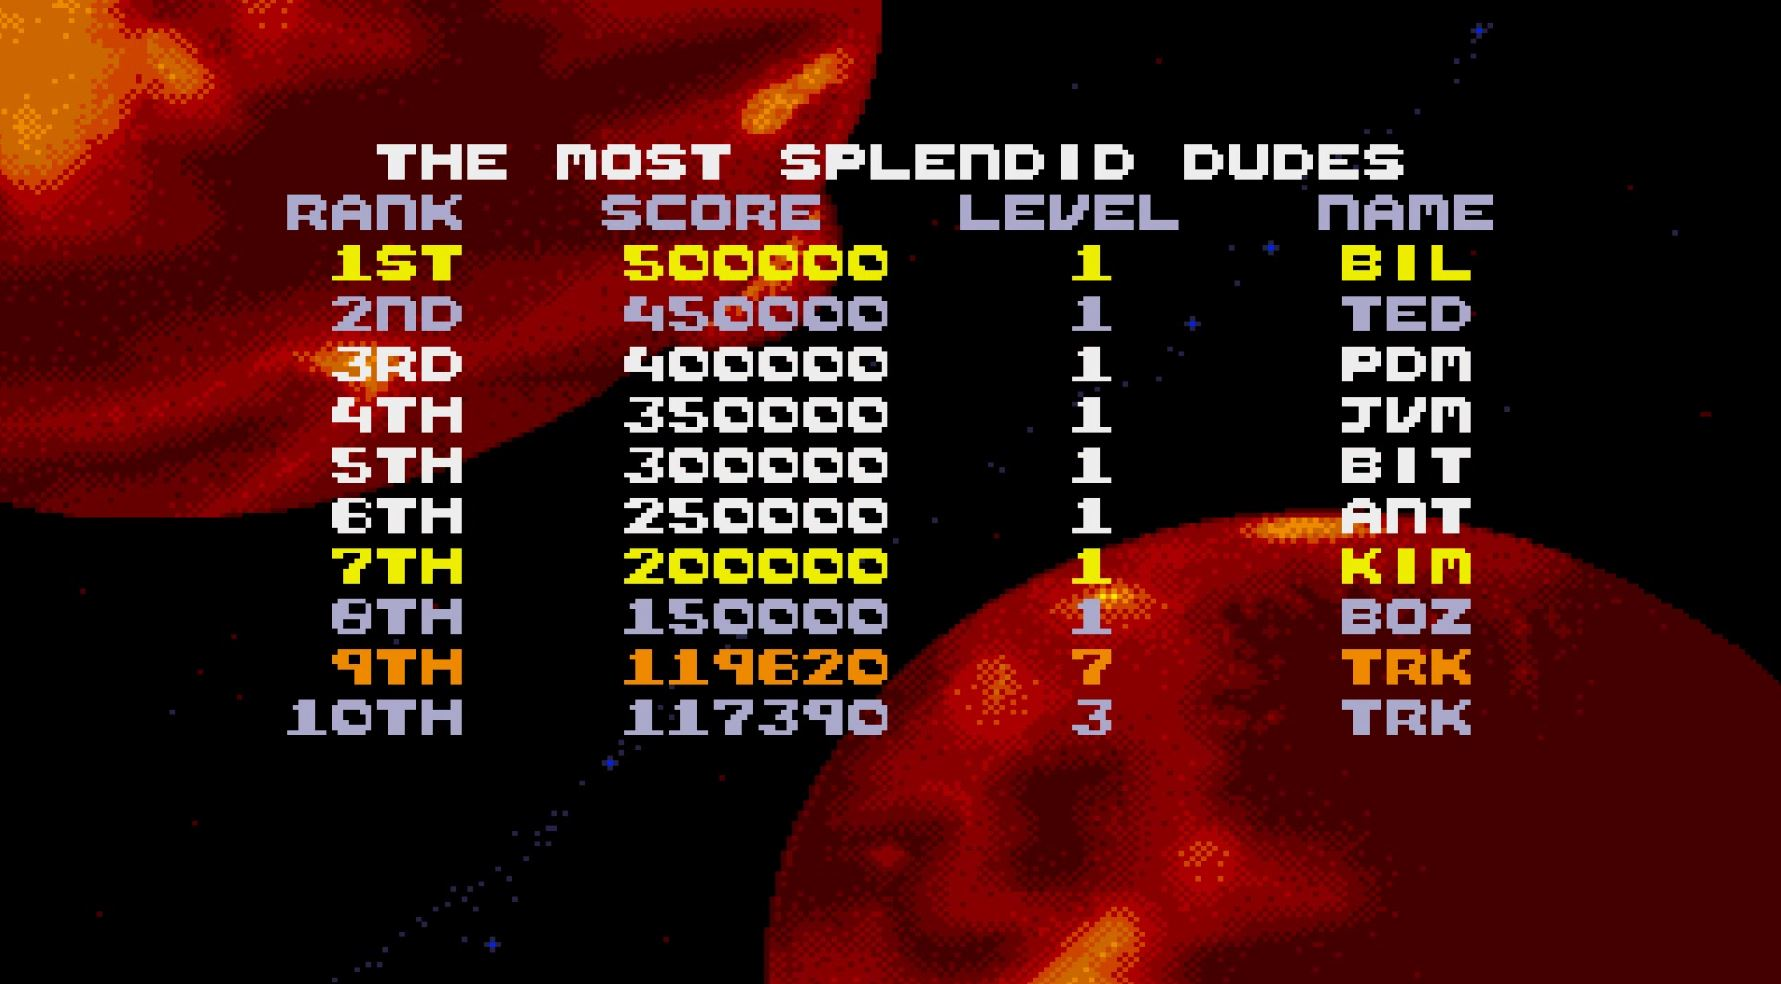 TheTrickster: Super Space Invaders [Normal] (Amiga Emulated) 119,620 points on 2016-04-20 08:06:32